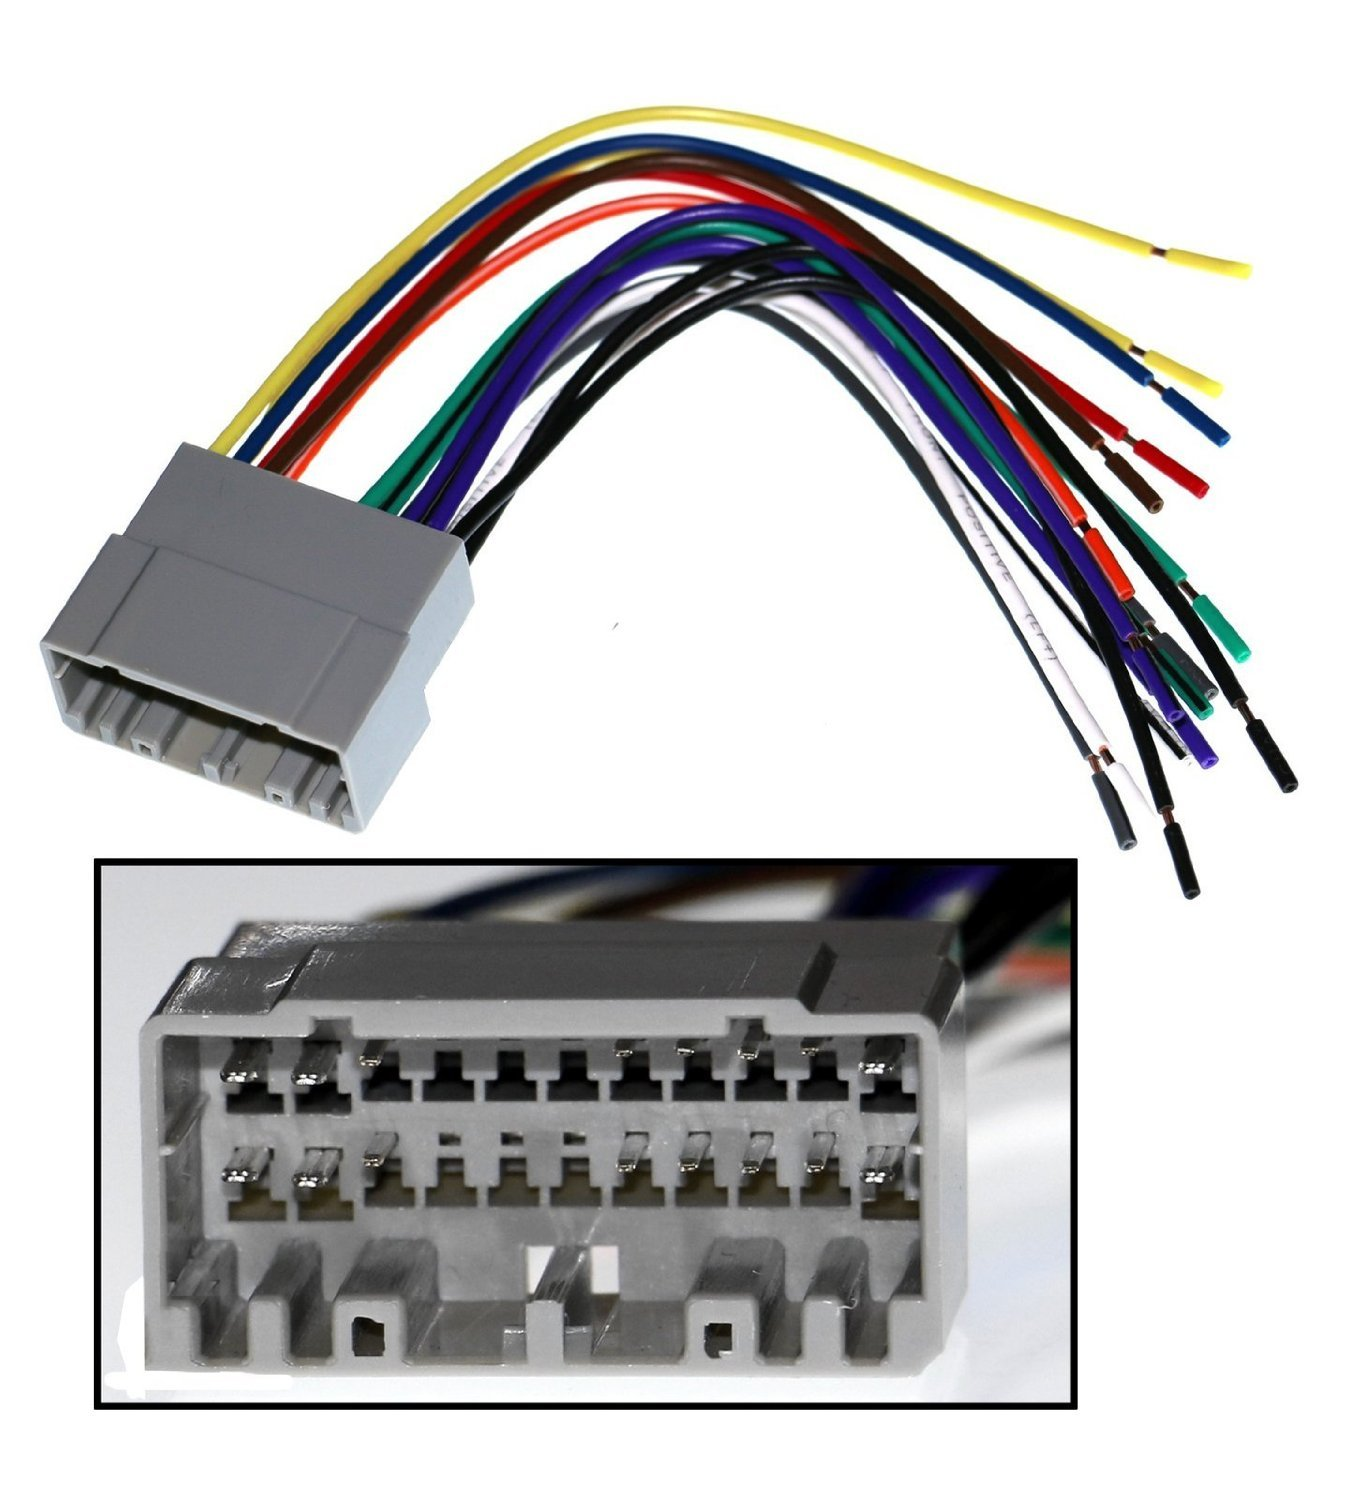 710Q%2BKgavVL._SL1500_ amazon com pioneer car stereo reciever dash install mounting kit car wiring harness at virtualis.co